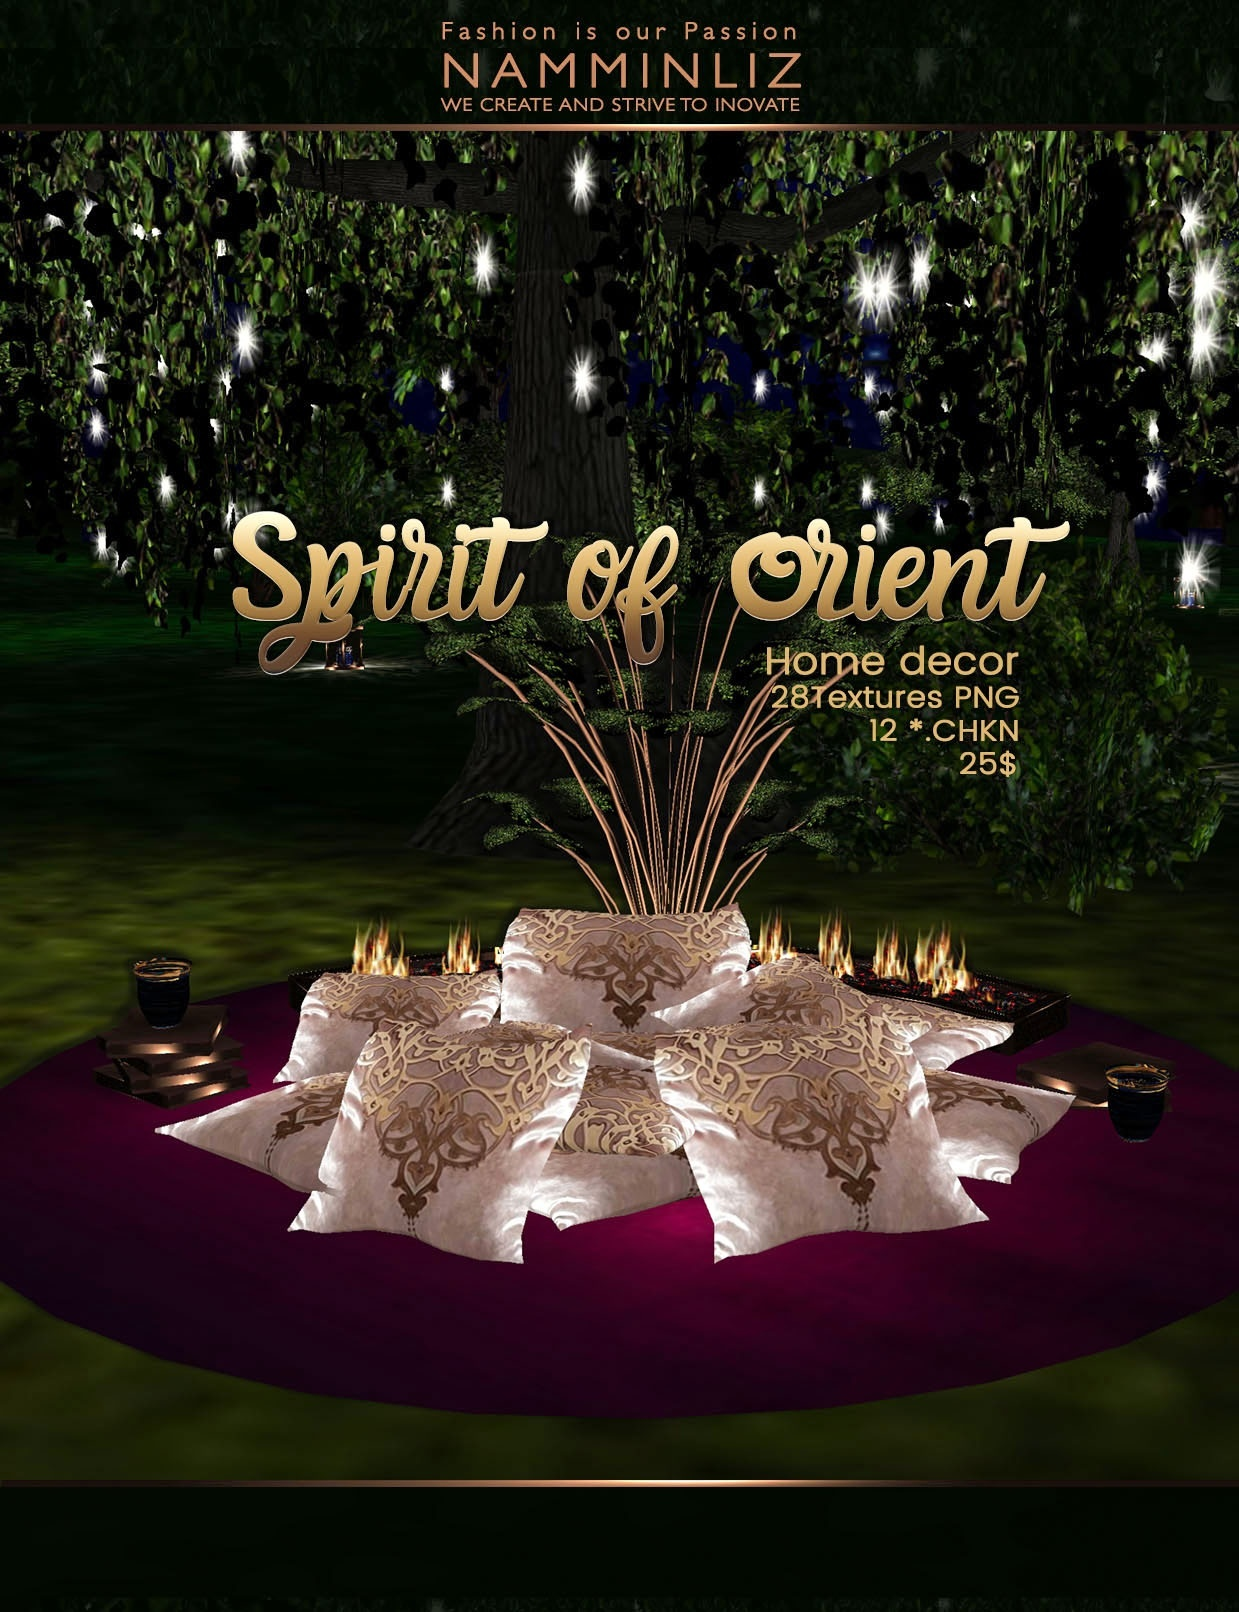 Spirit of Orient Home decor imvu 28 Textures PNG 12*.CHKN